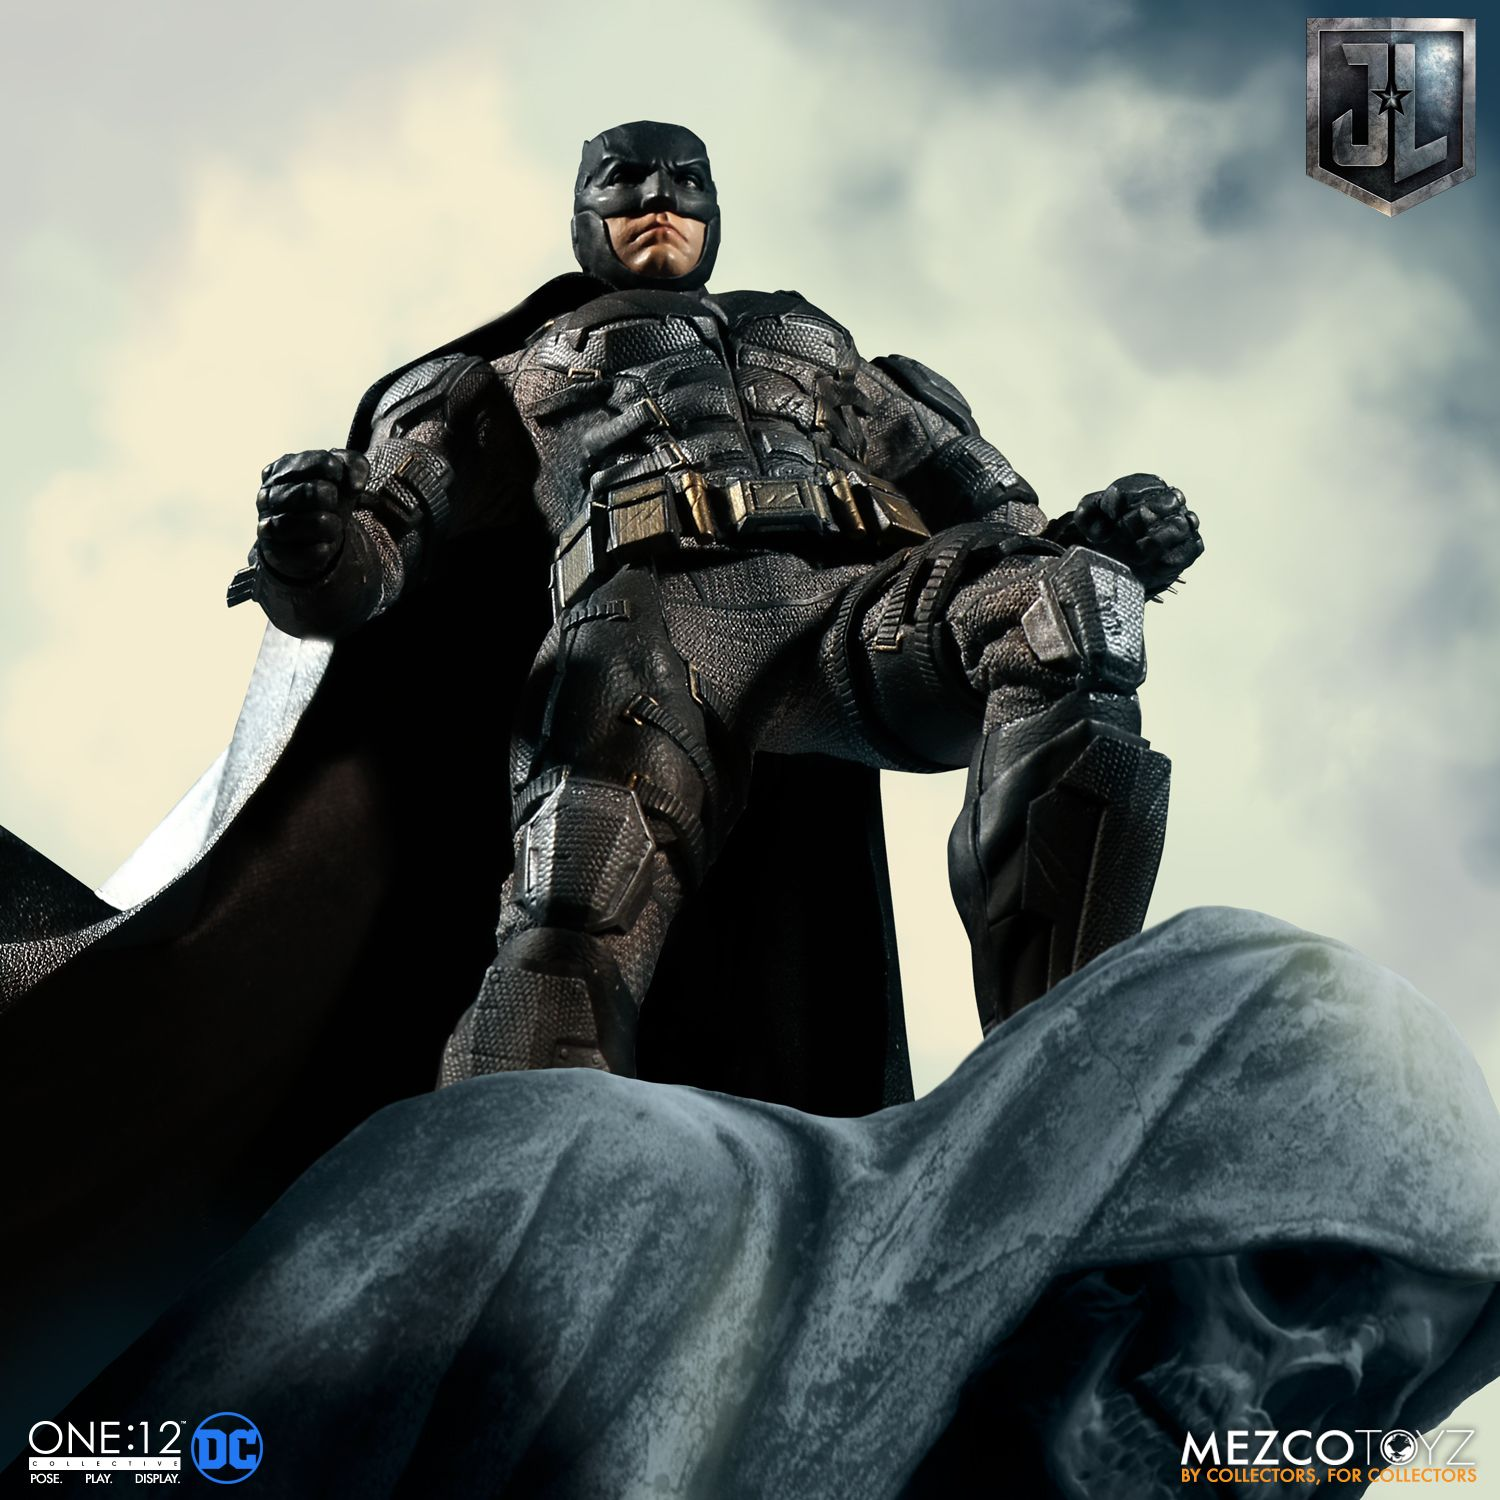 Mezco-Tactical-Suit-Batman-003